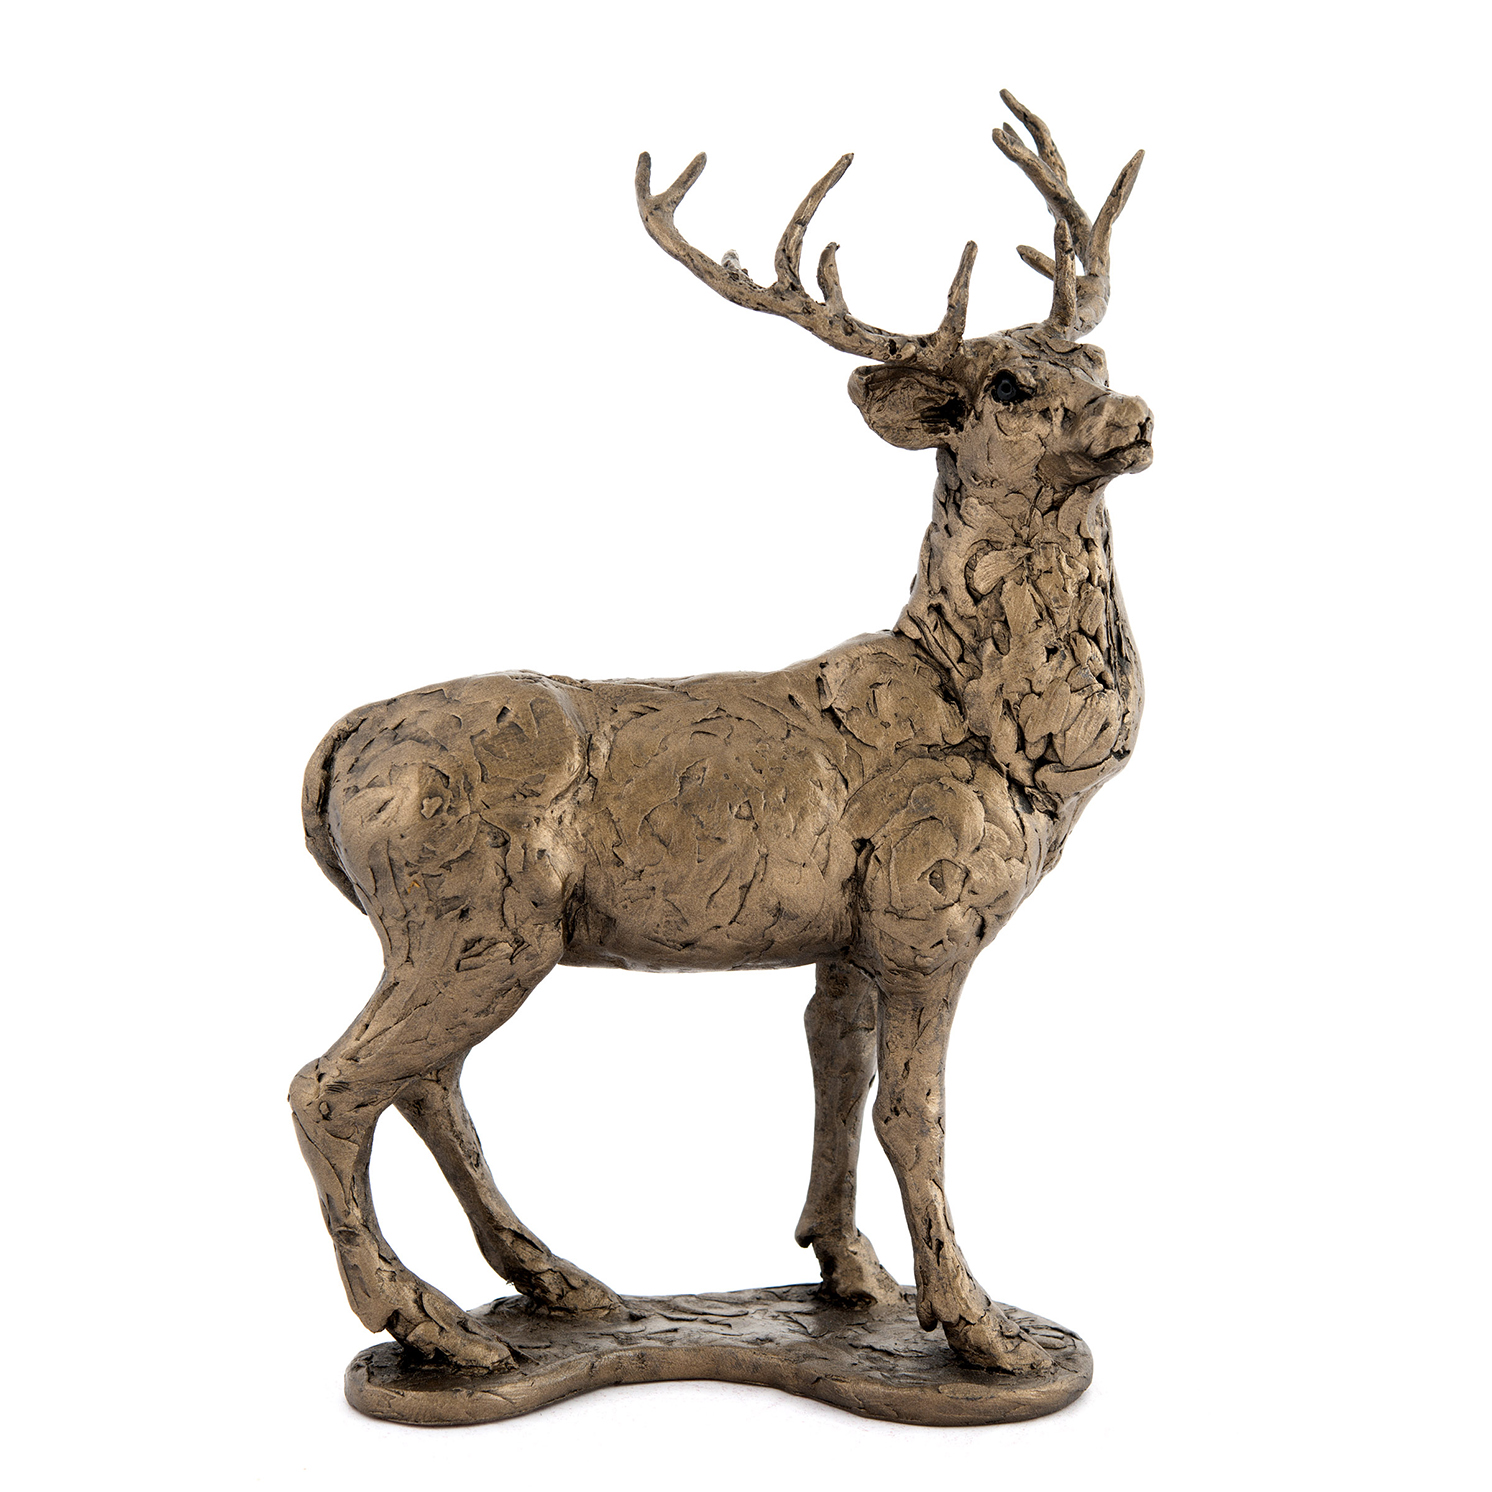 Frith Sculpture – Red Deer Stag in Bronze Resin by Thomas Meadows in Box